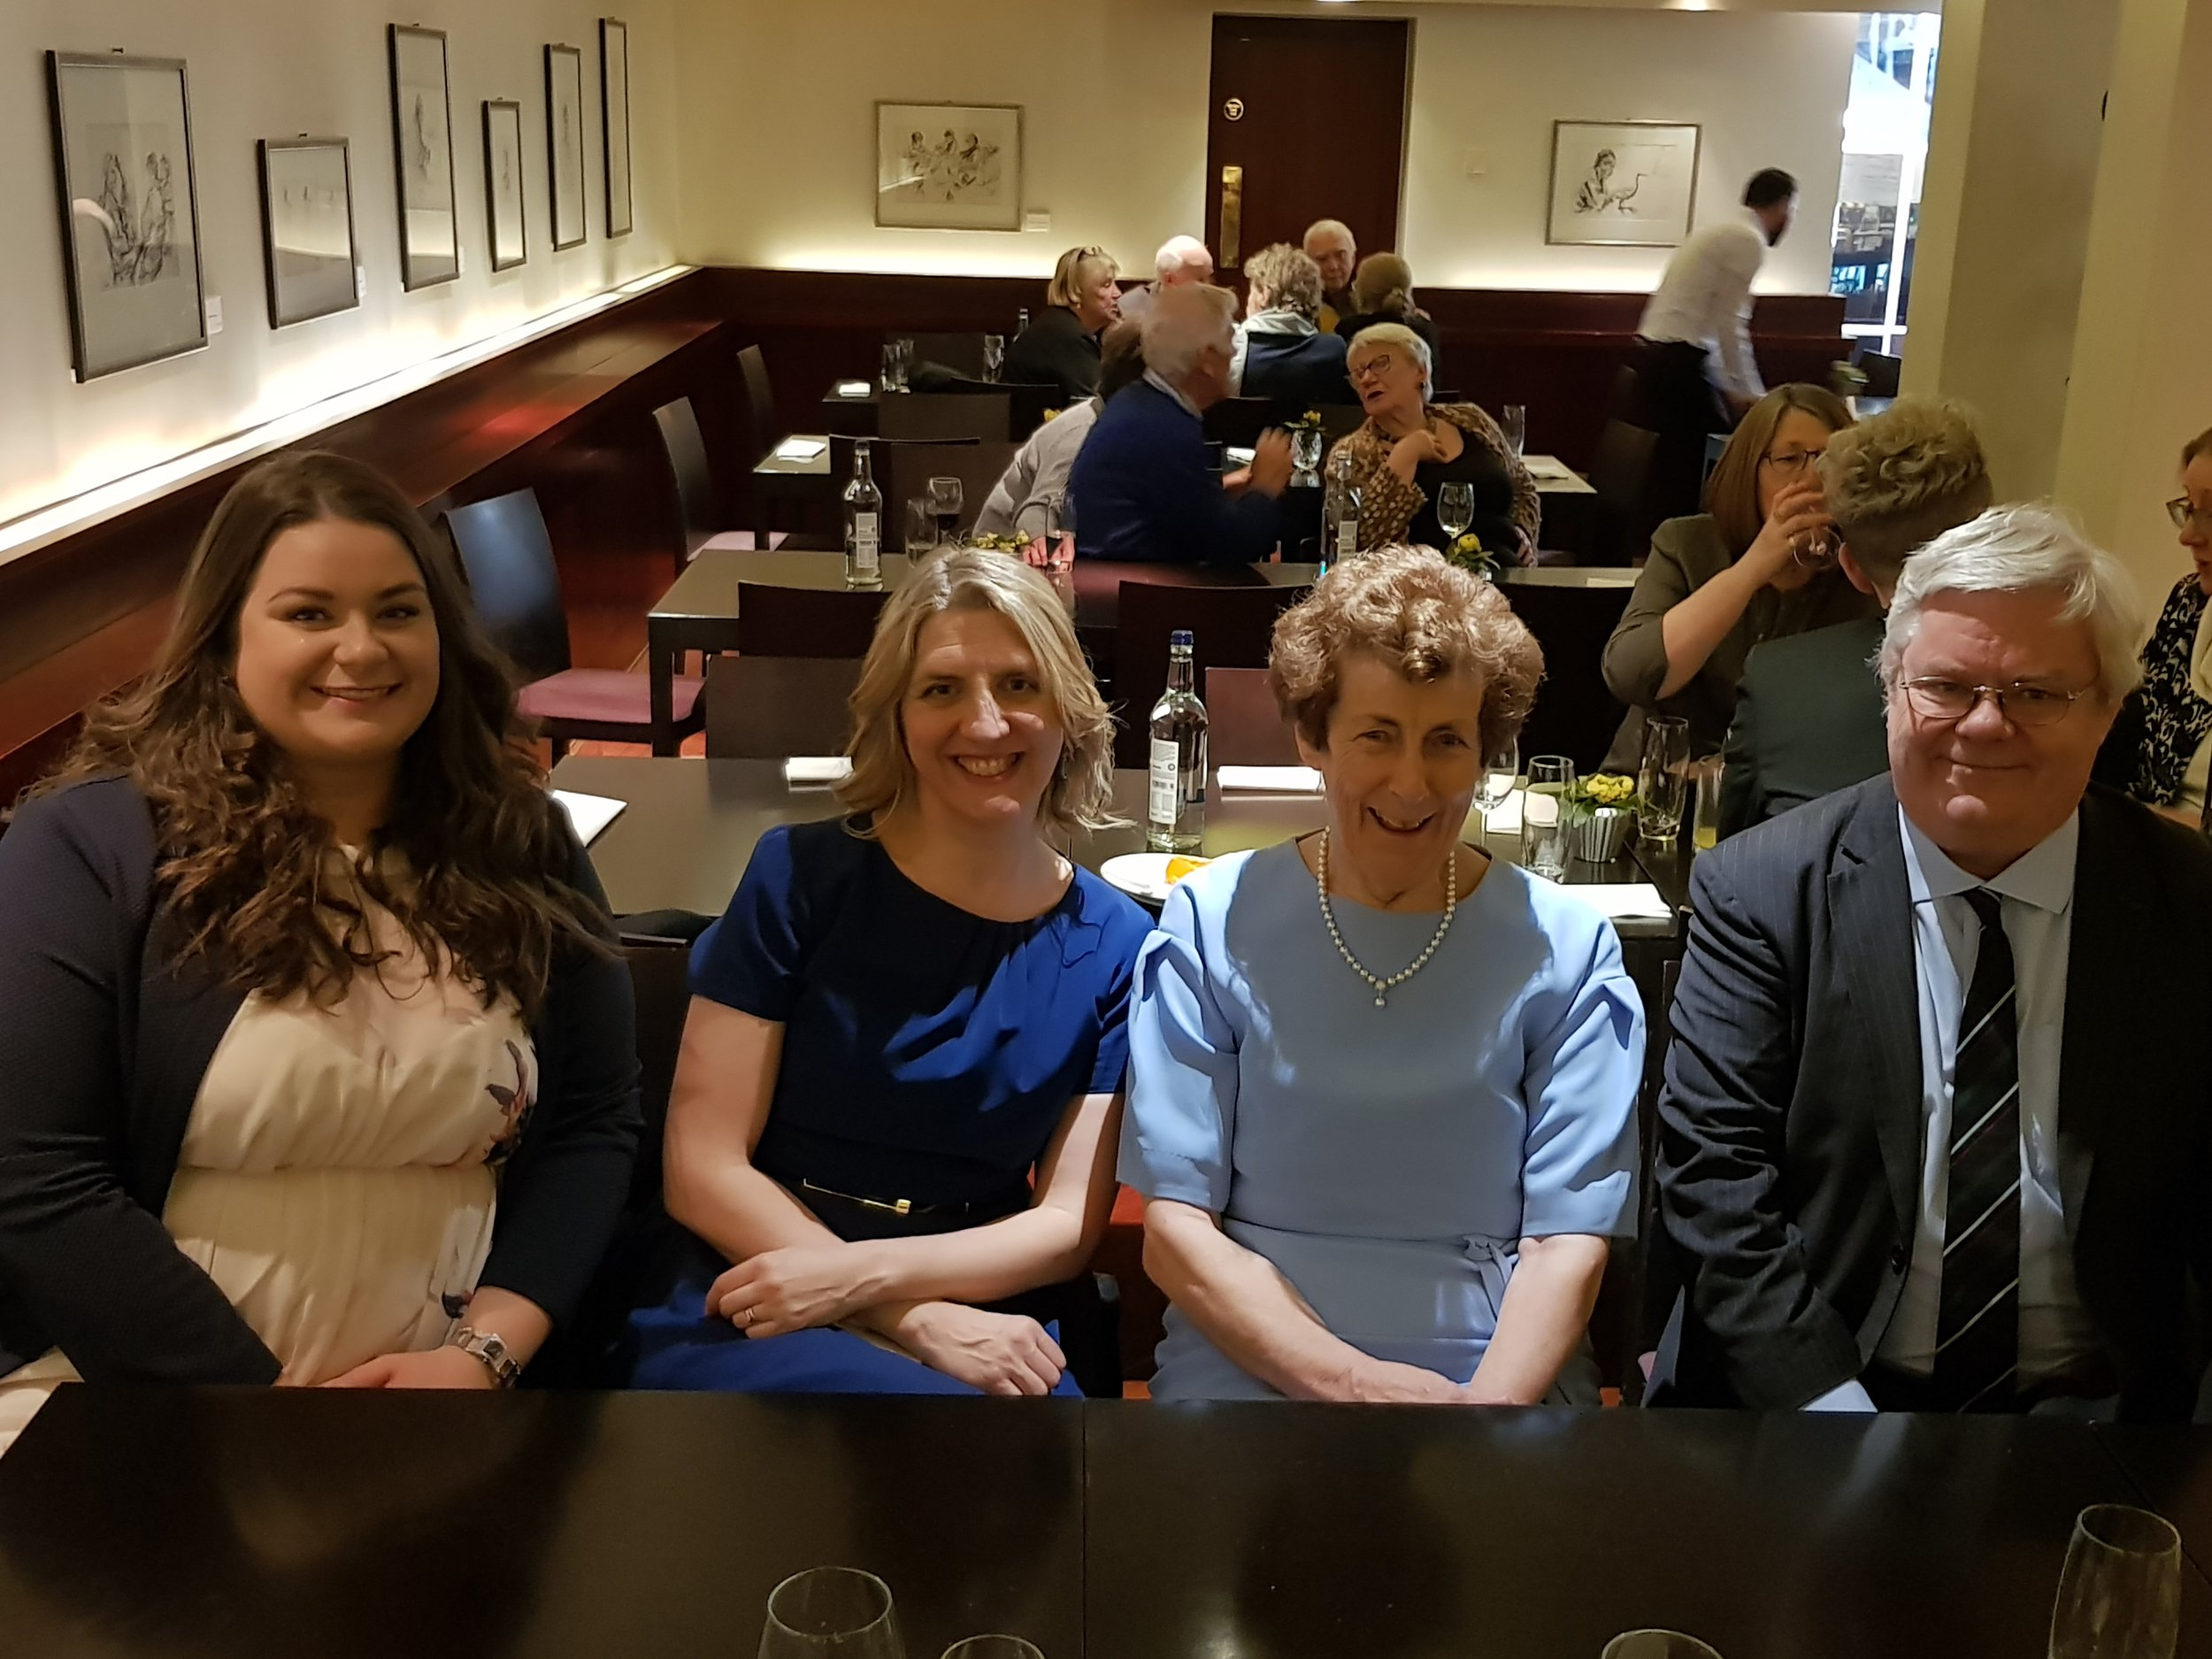 L-R: Emma O'Keeffe, Dearbhla Collins, Dr Ita Beausang, Dr Kerry Houston.